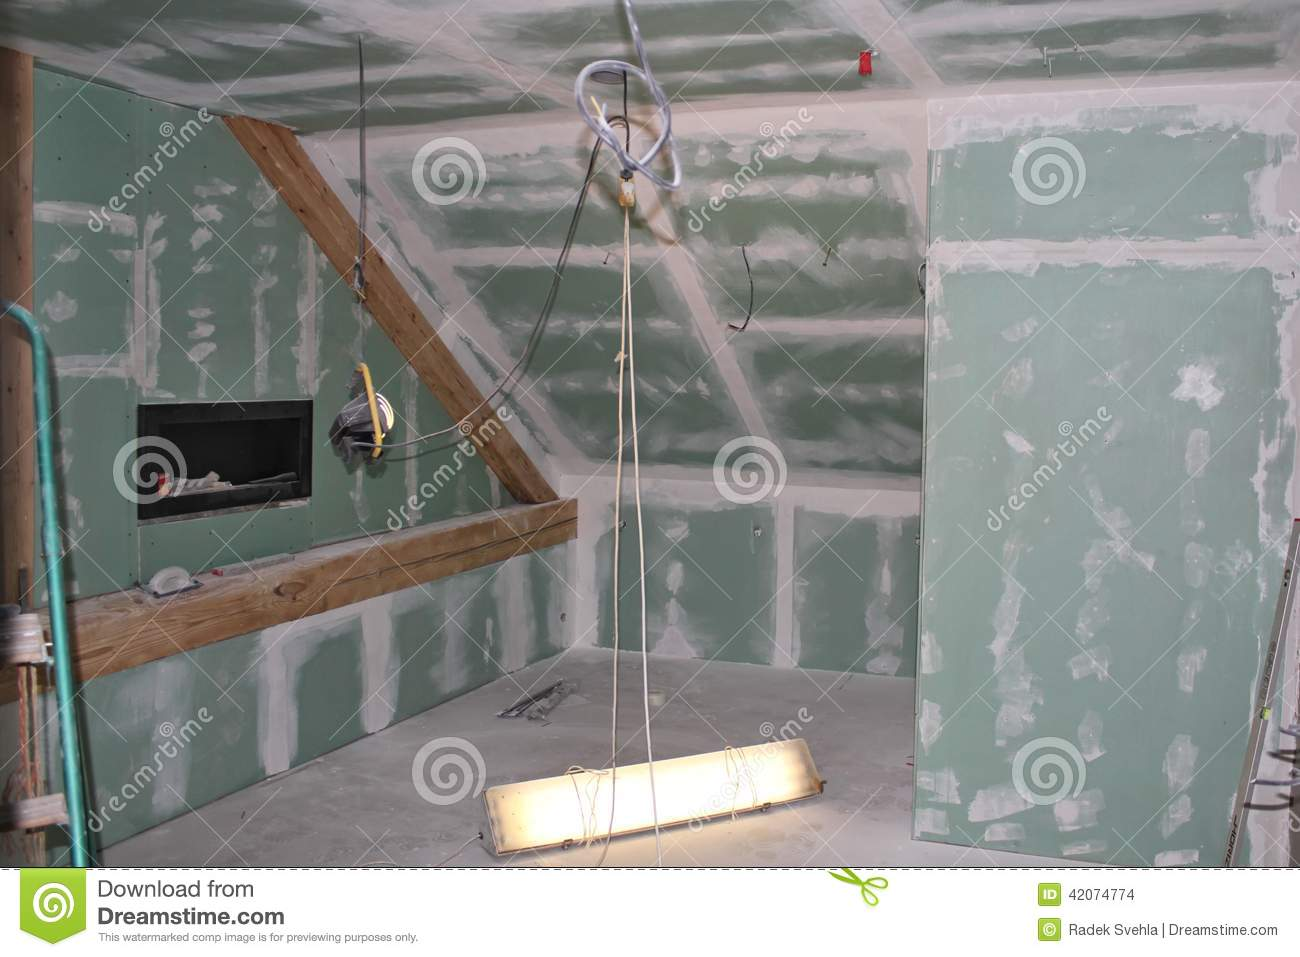 Reconstruction of the attic